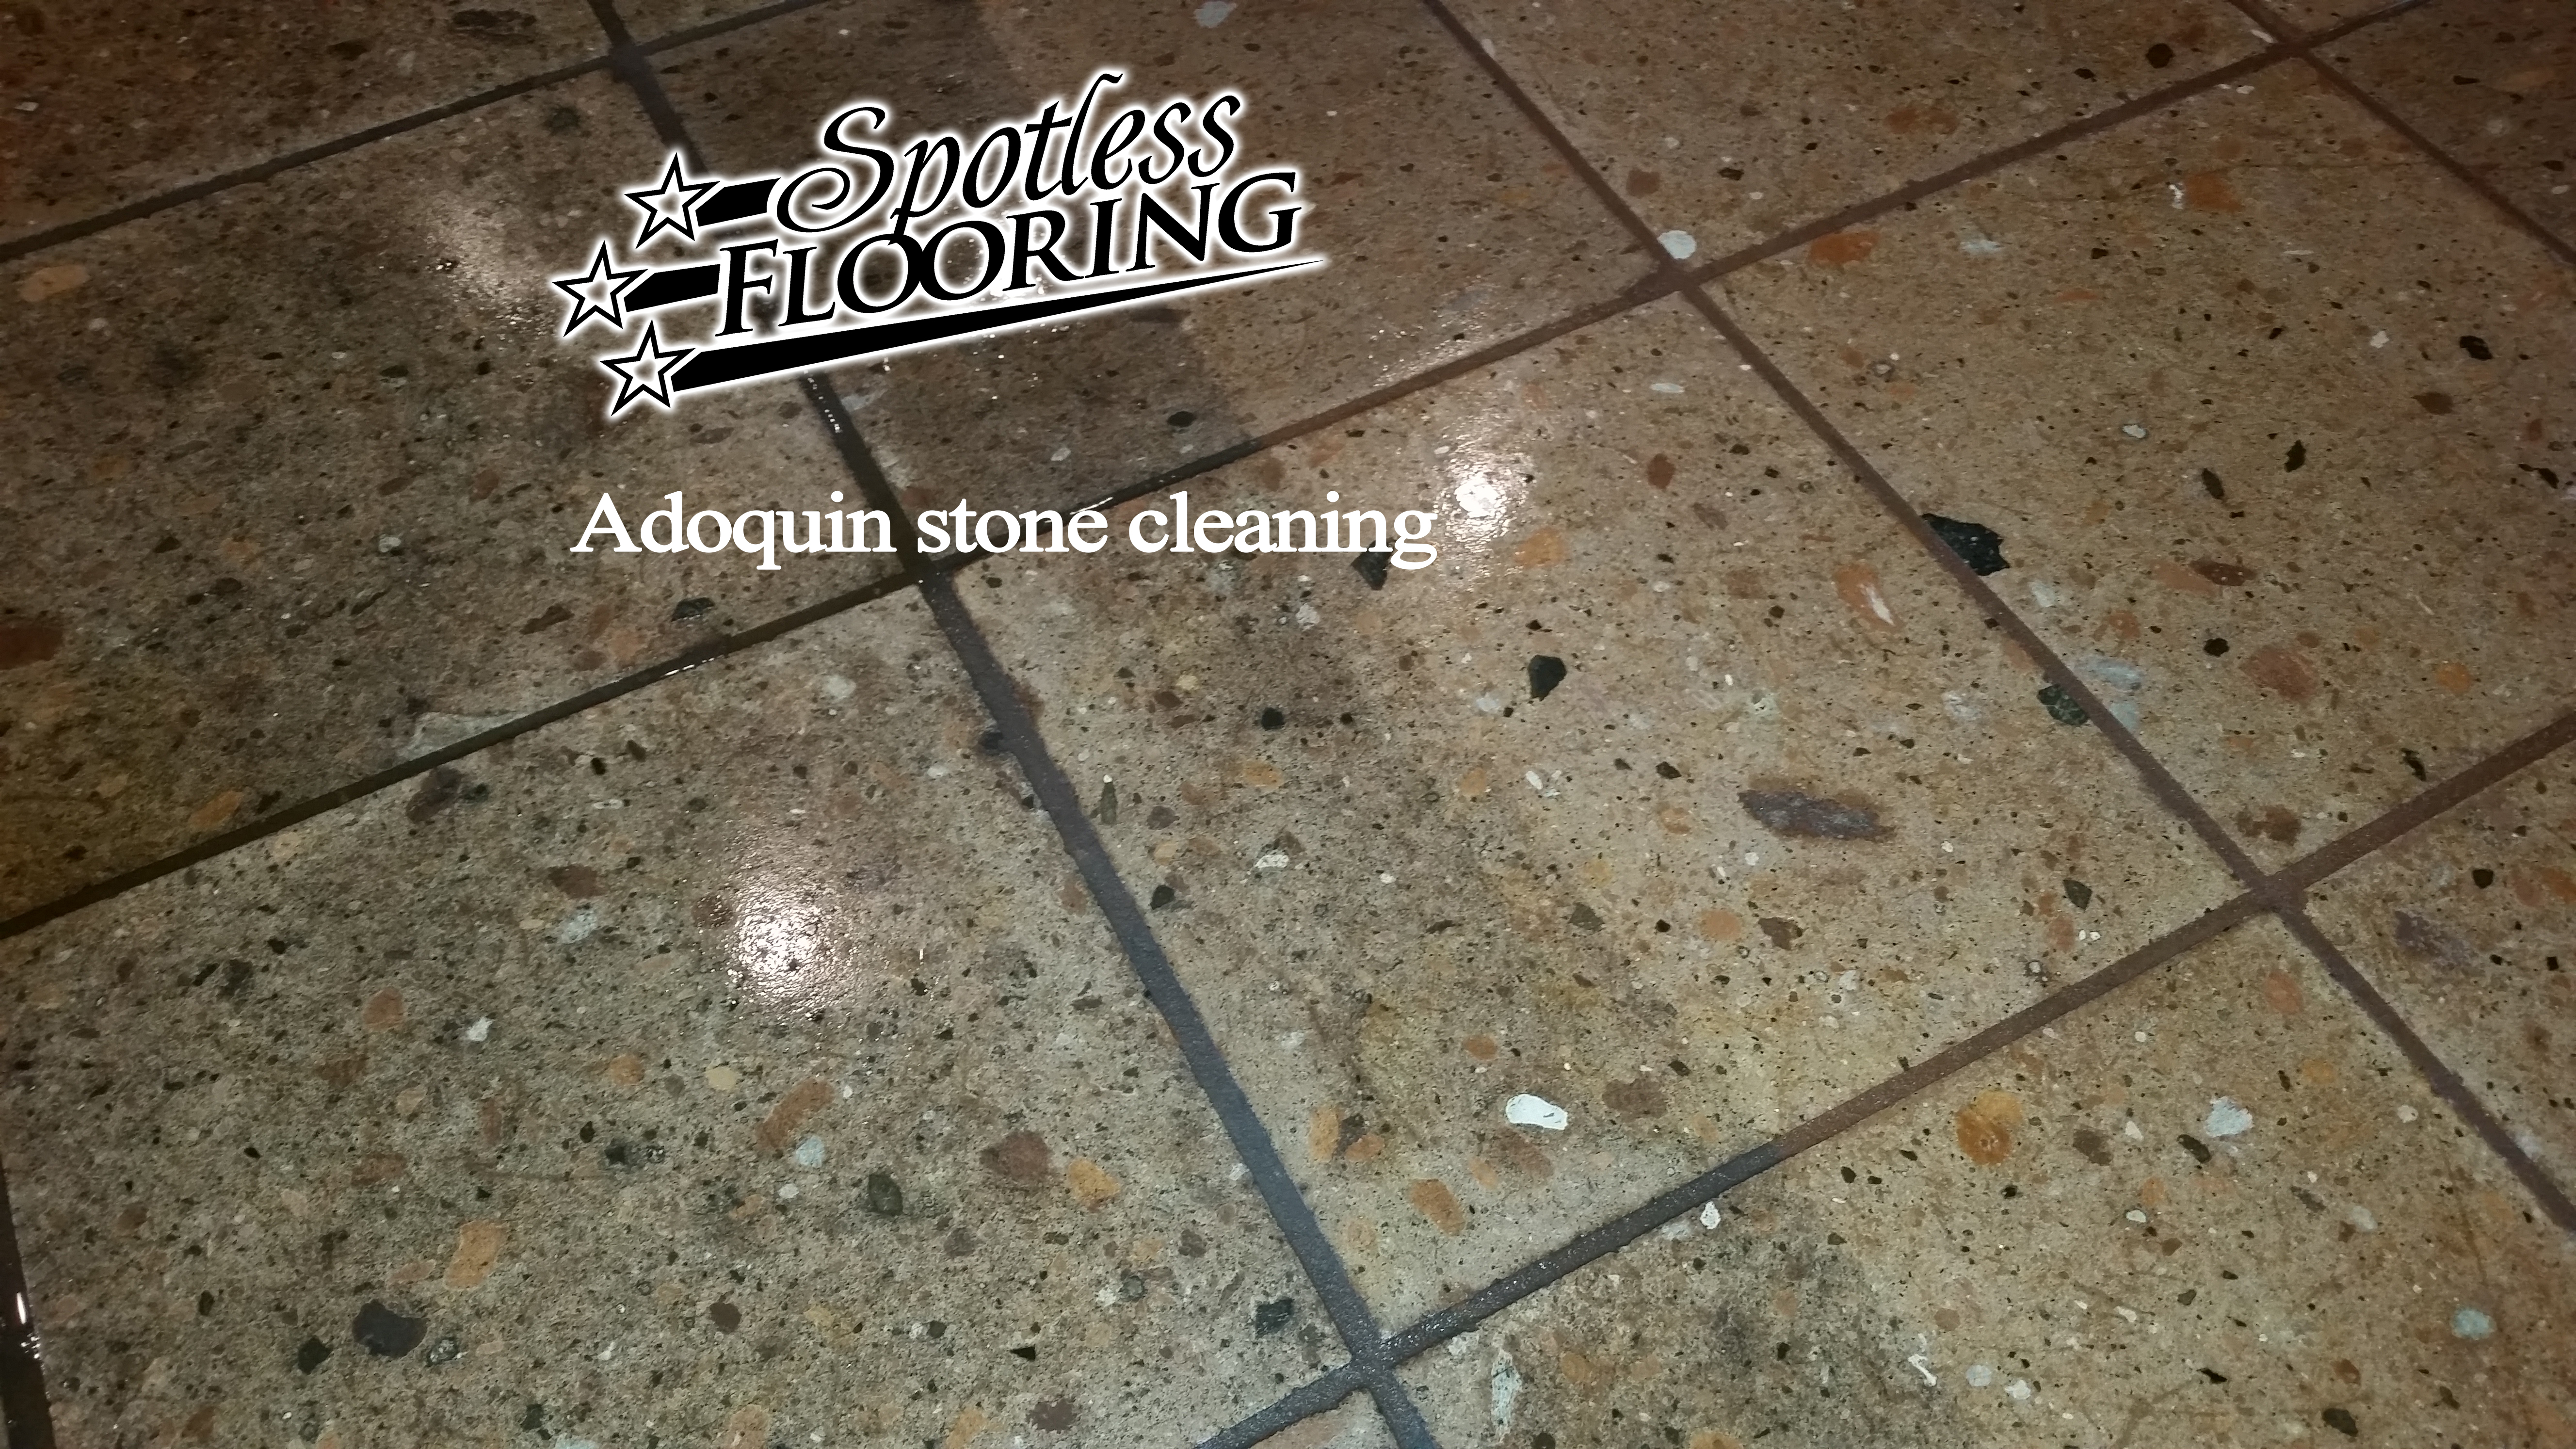 Adoquin Tile Cleaning